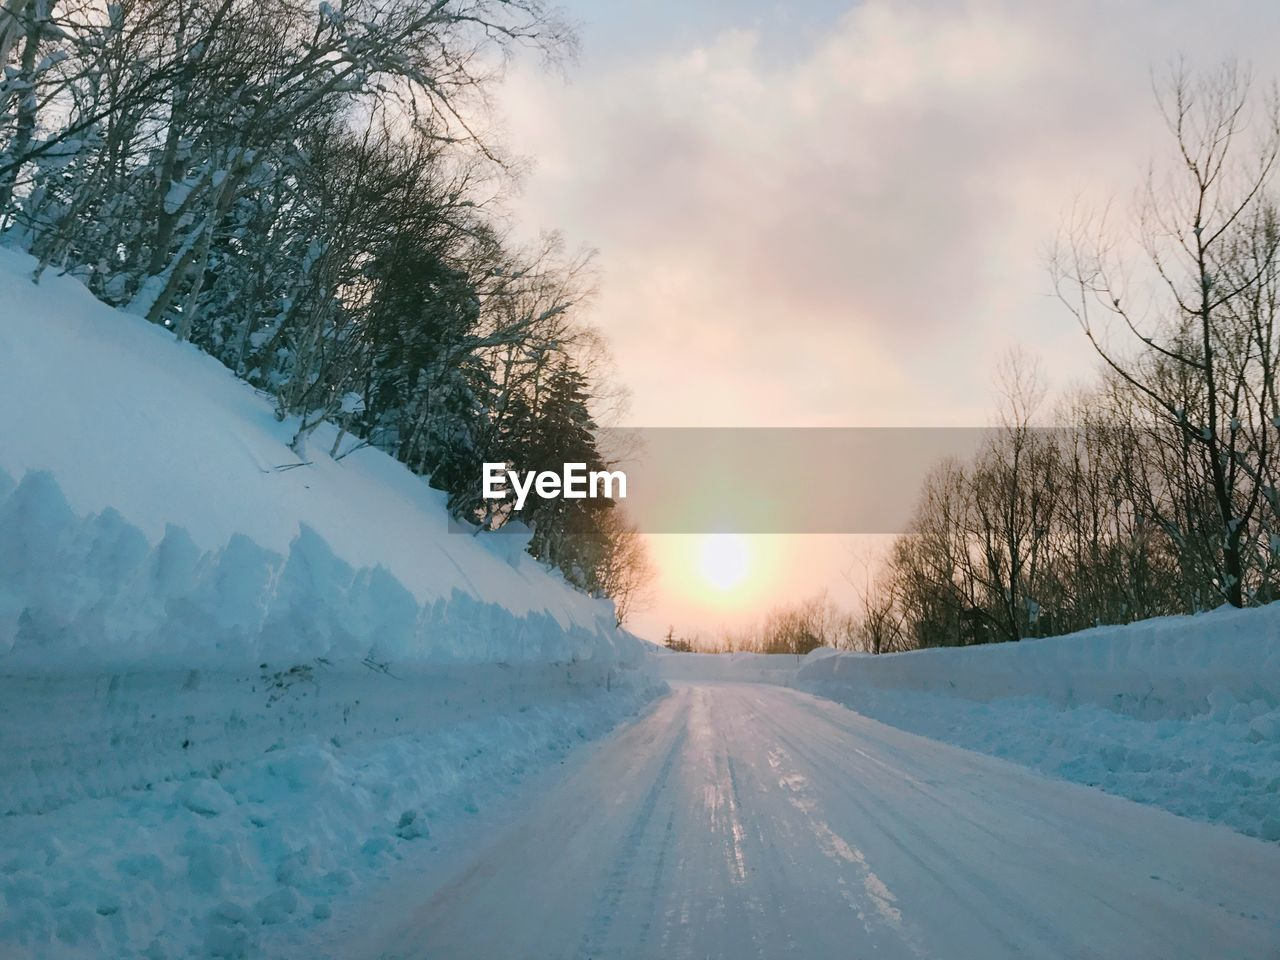 winter, cold temperature, snow, weather, nature, sunset, tree, scenics, beauty in nature, sky, sun, outdoors, road, no people, the way forward, tranquility, tranquil scene, transportation, frozen, bare tree, day